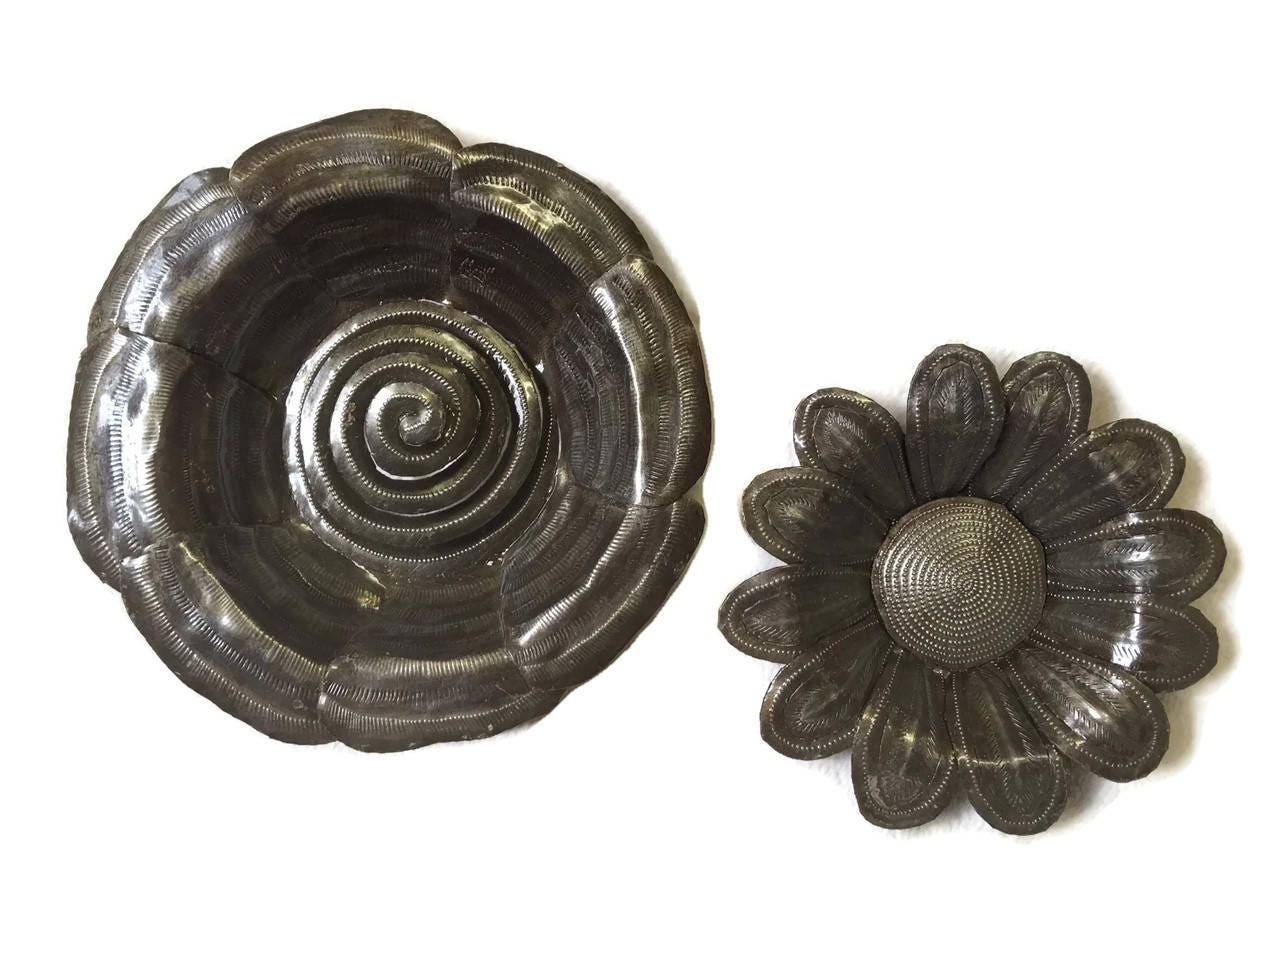 Metal Flowers Handmade in Haiti From Recycled Oil Drums, (set of 2), 7